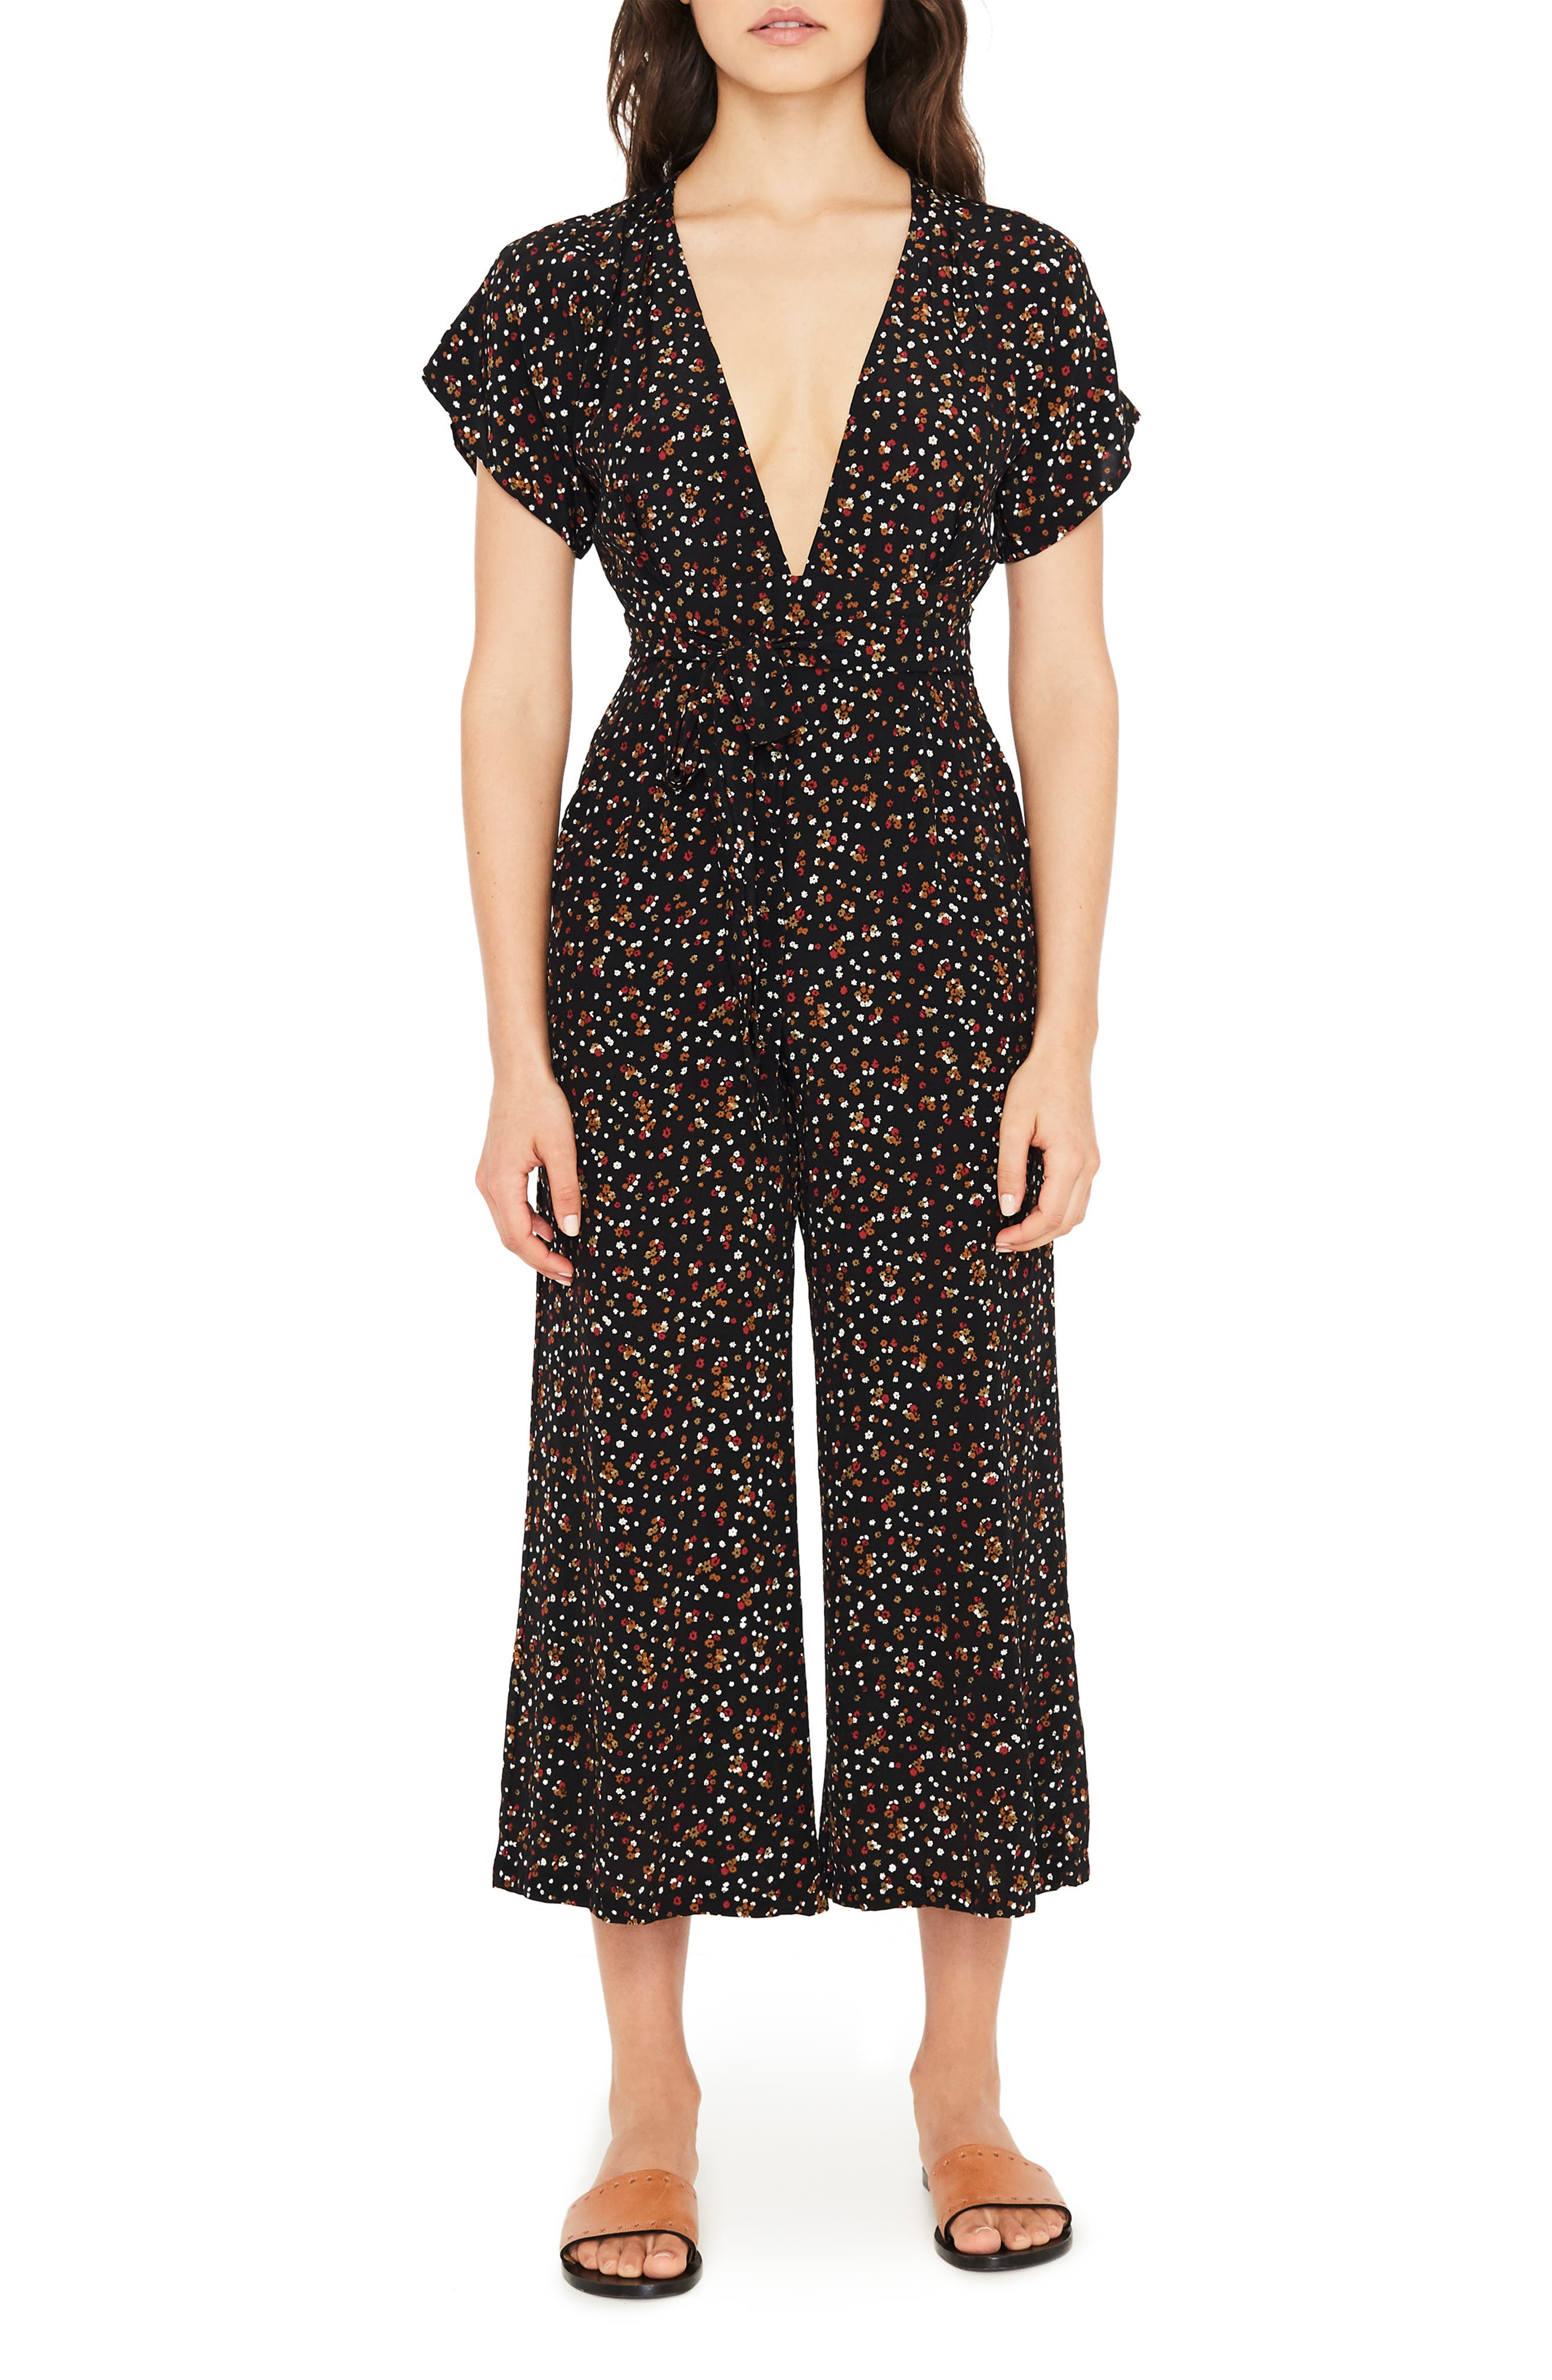 FAITHFULL THE BRAND Alena Ditsy Floral Print Jumpsuit, Main, color, 001